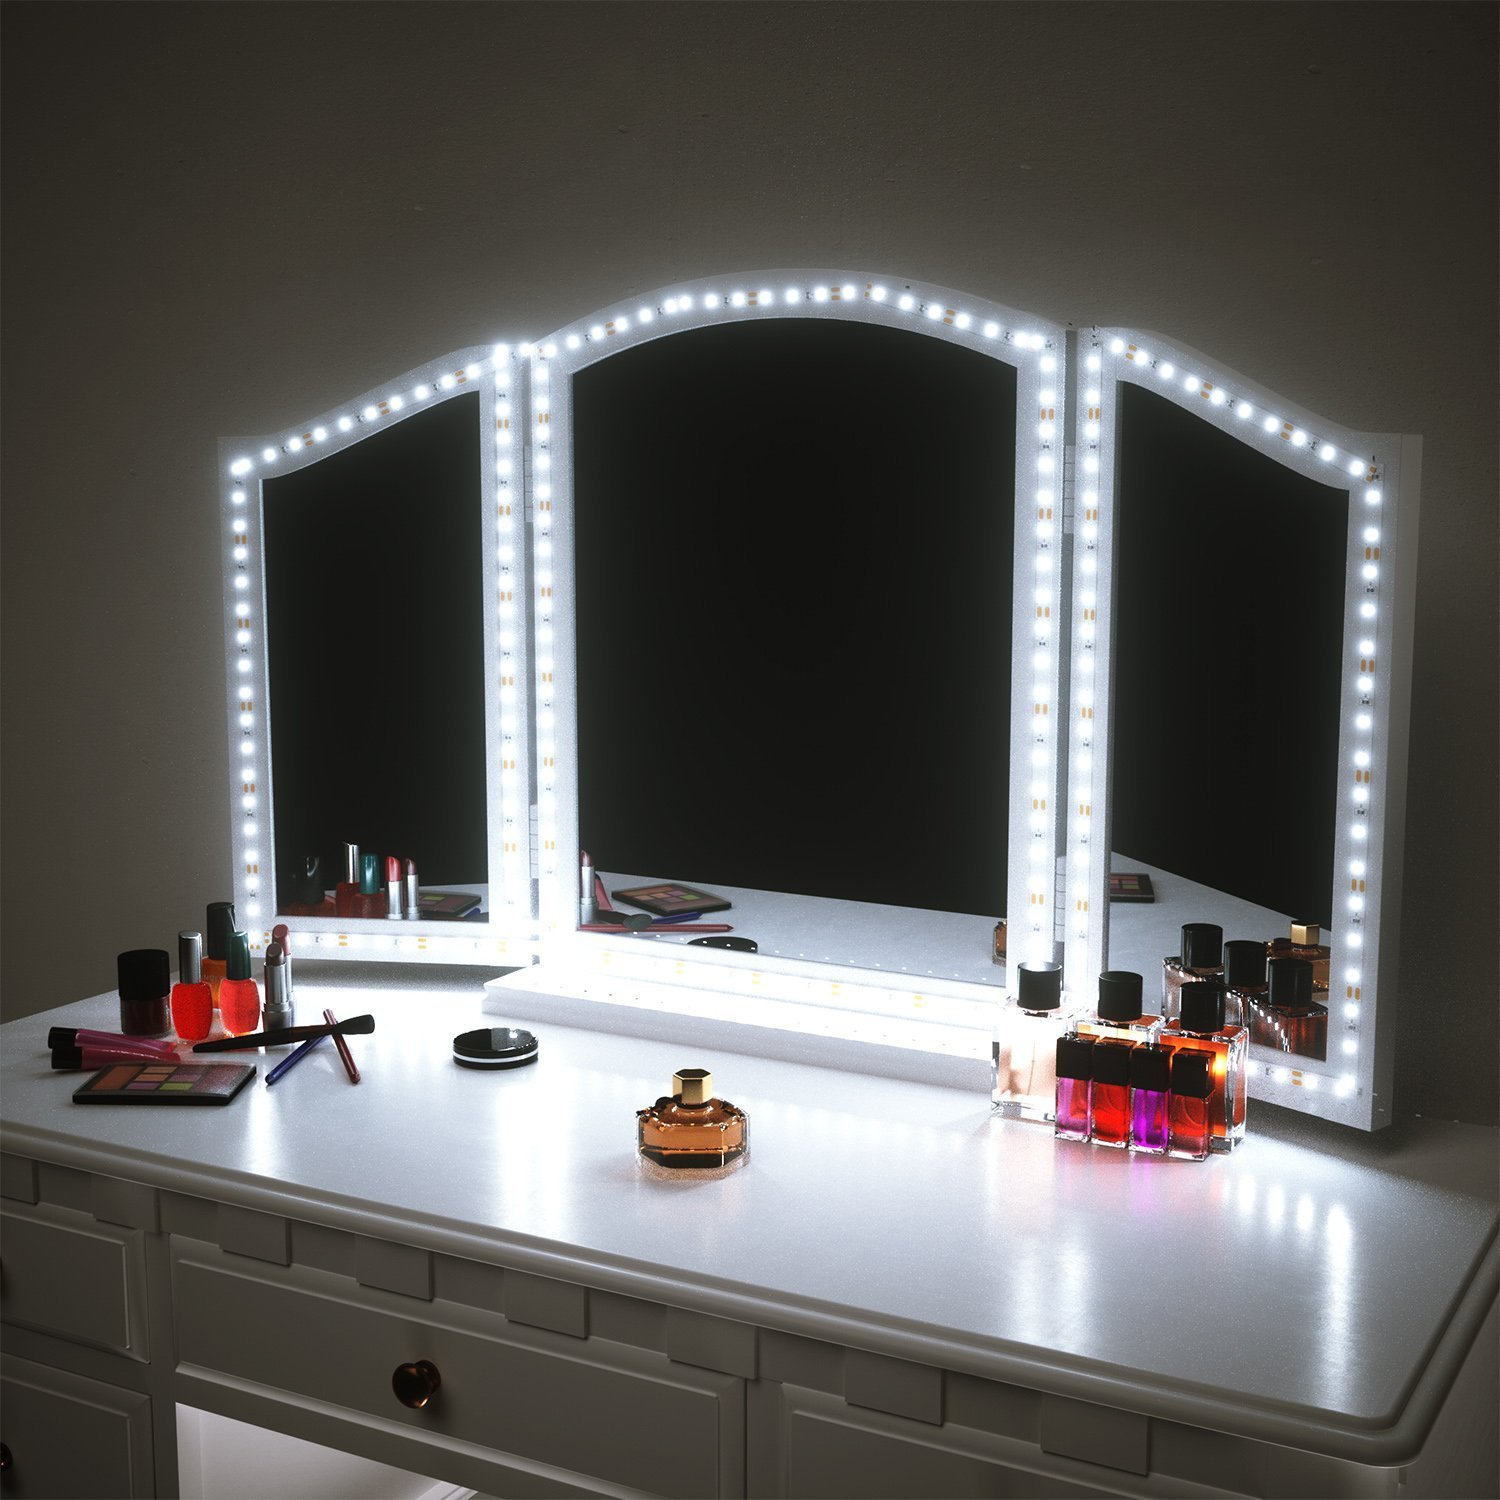 Pangton Villa Vanity Mirror Lights Kit For Makeup Dressing